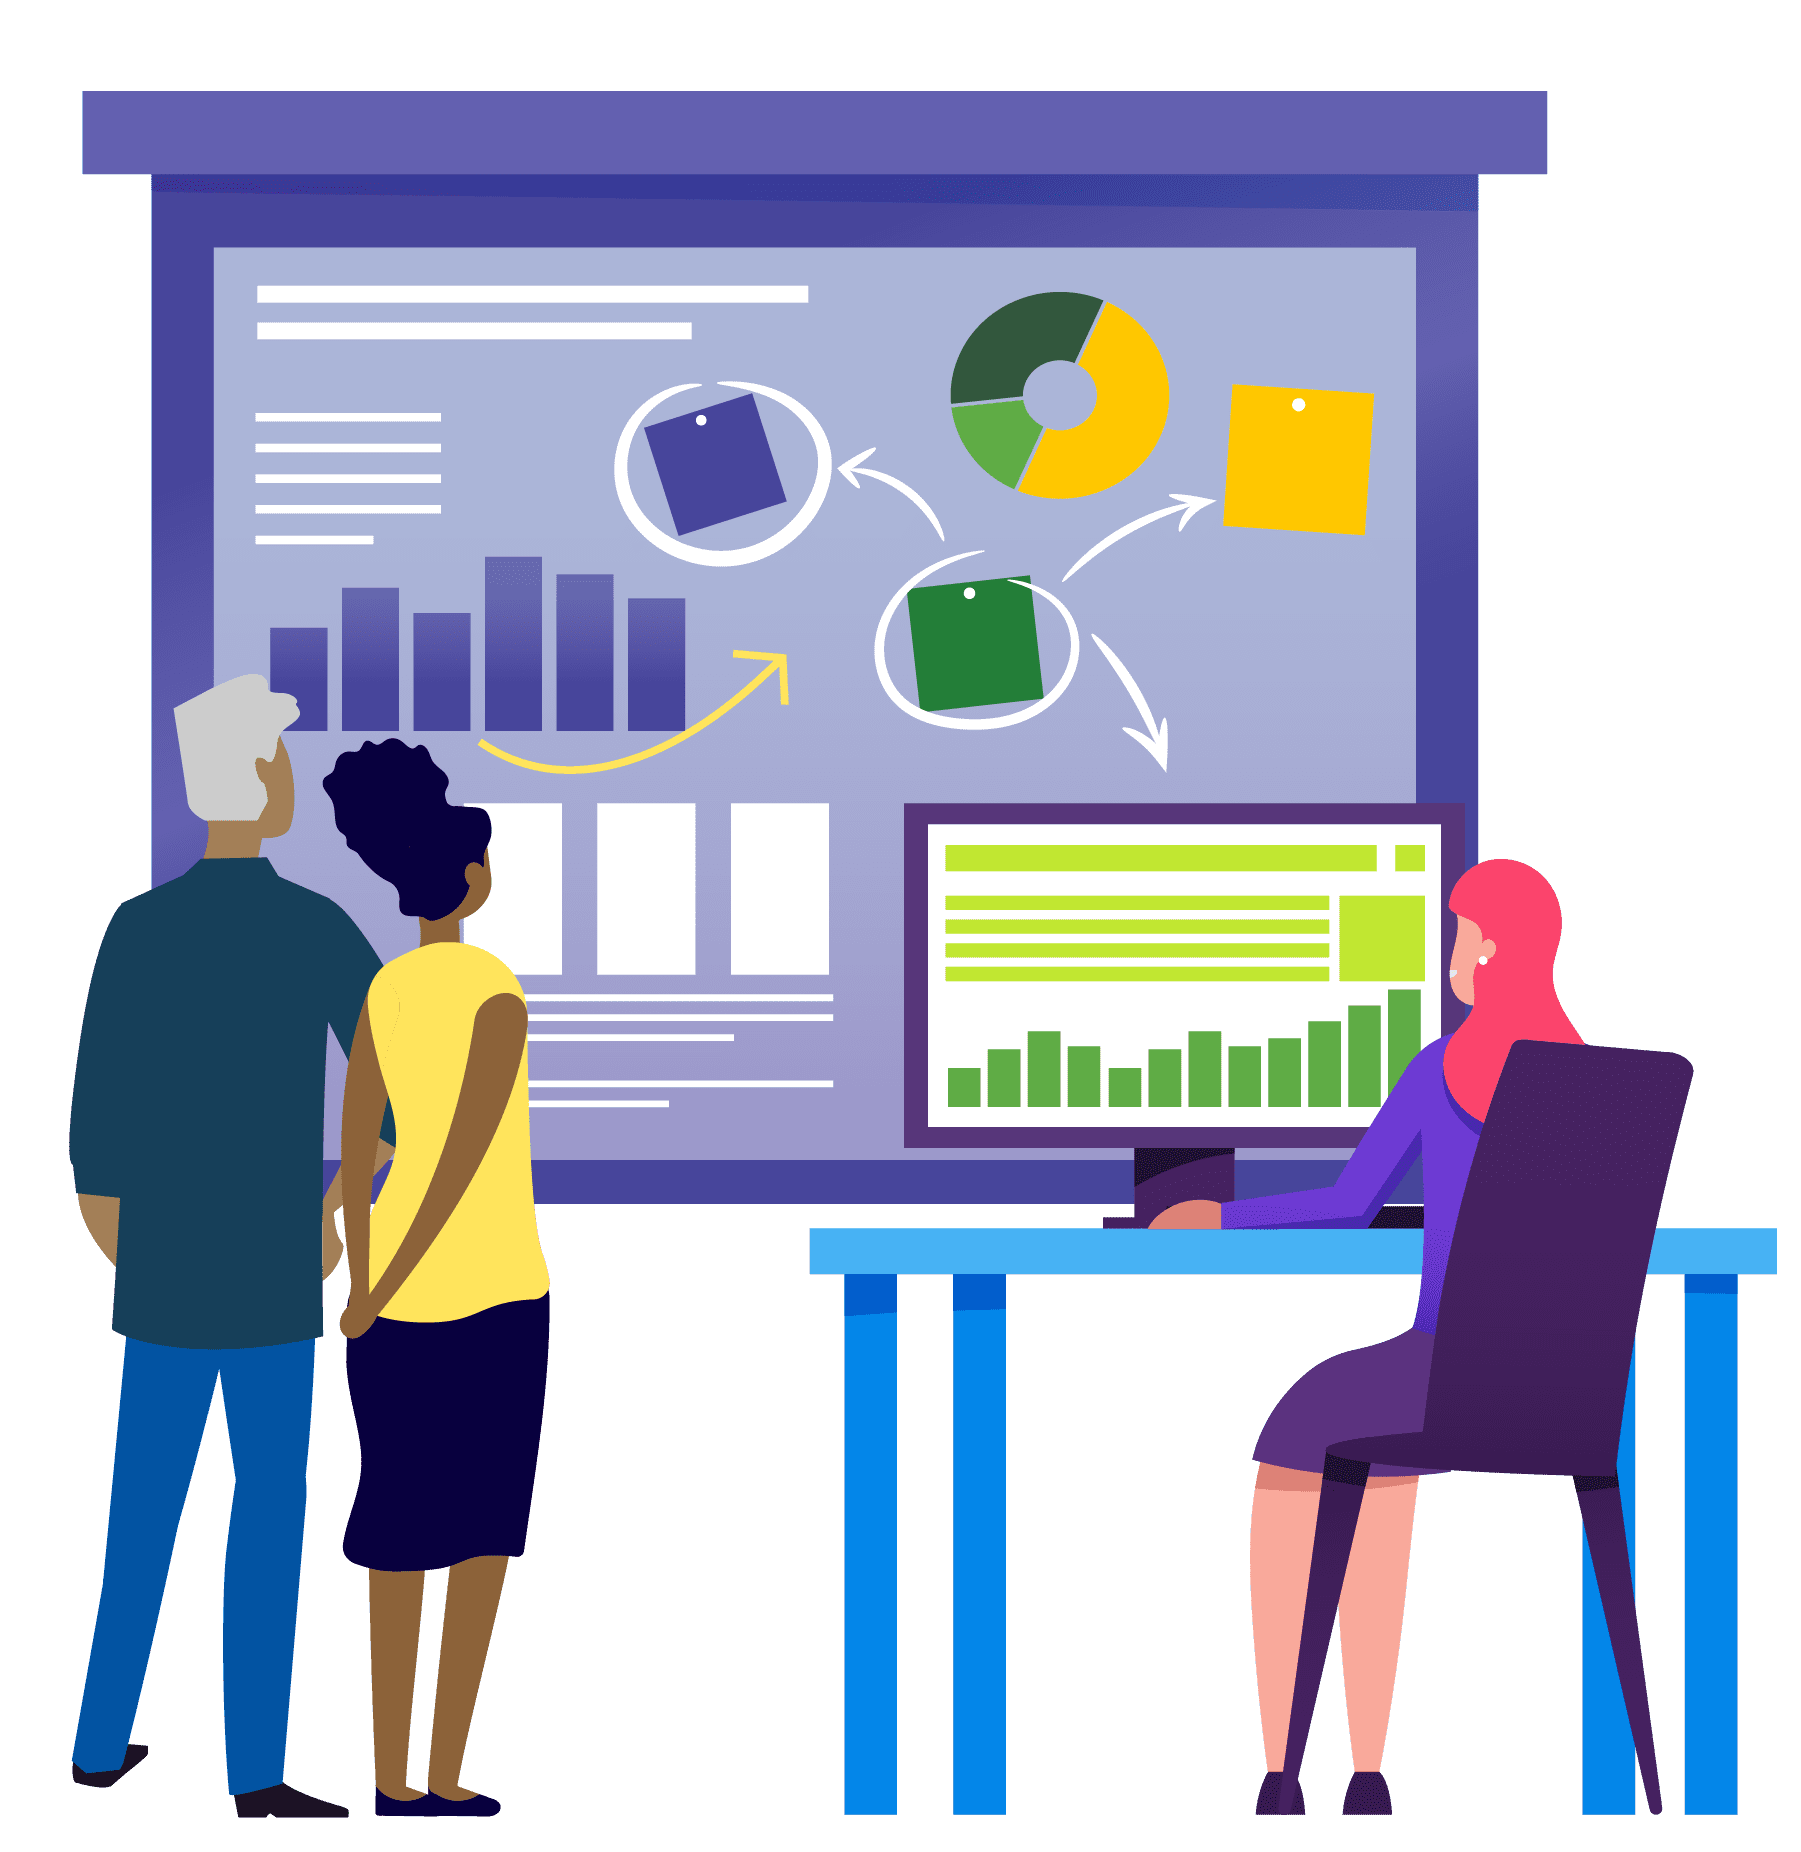 Larger Version - Illustration - OneCare Core Business Area - Data Analytics. Two data analysts on the left are looking at a large whiteboard covered in infographics and statistics. Next to them is a woman sitting in front of a computer generating detailed analytics.